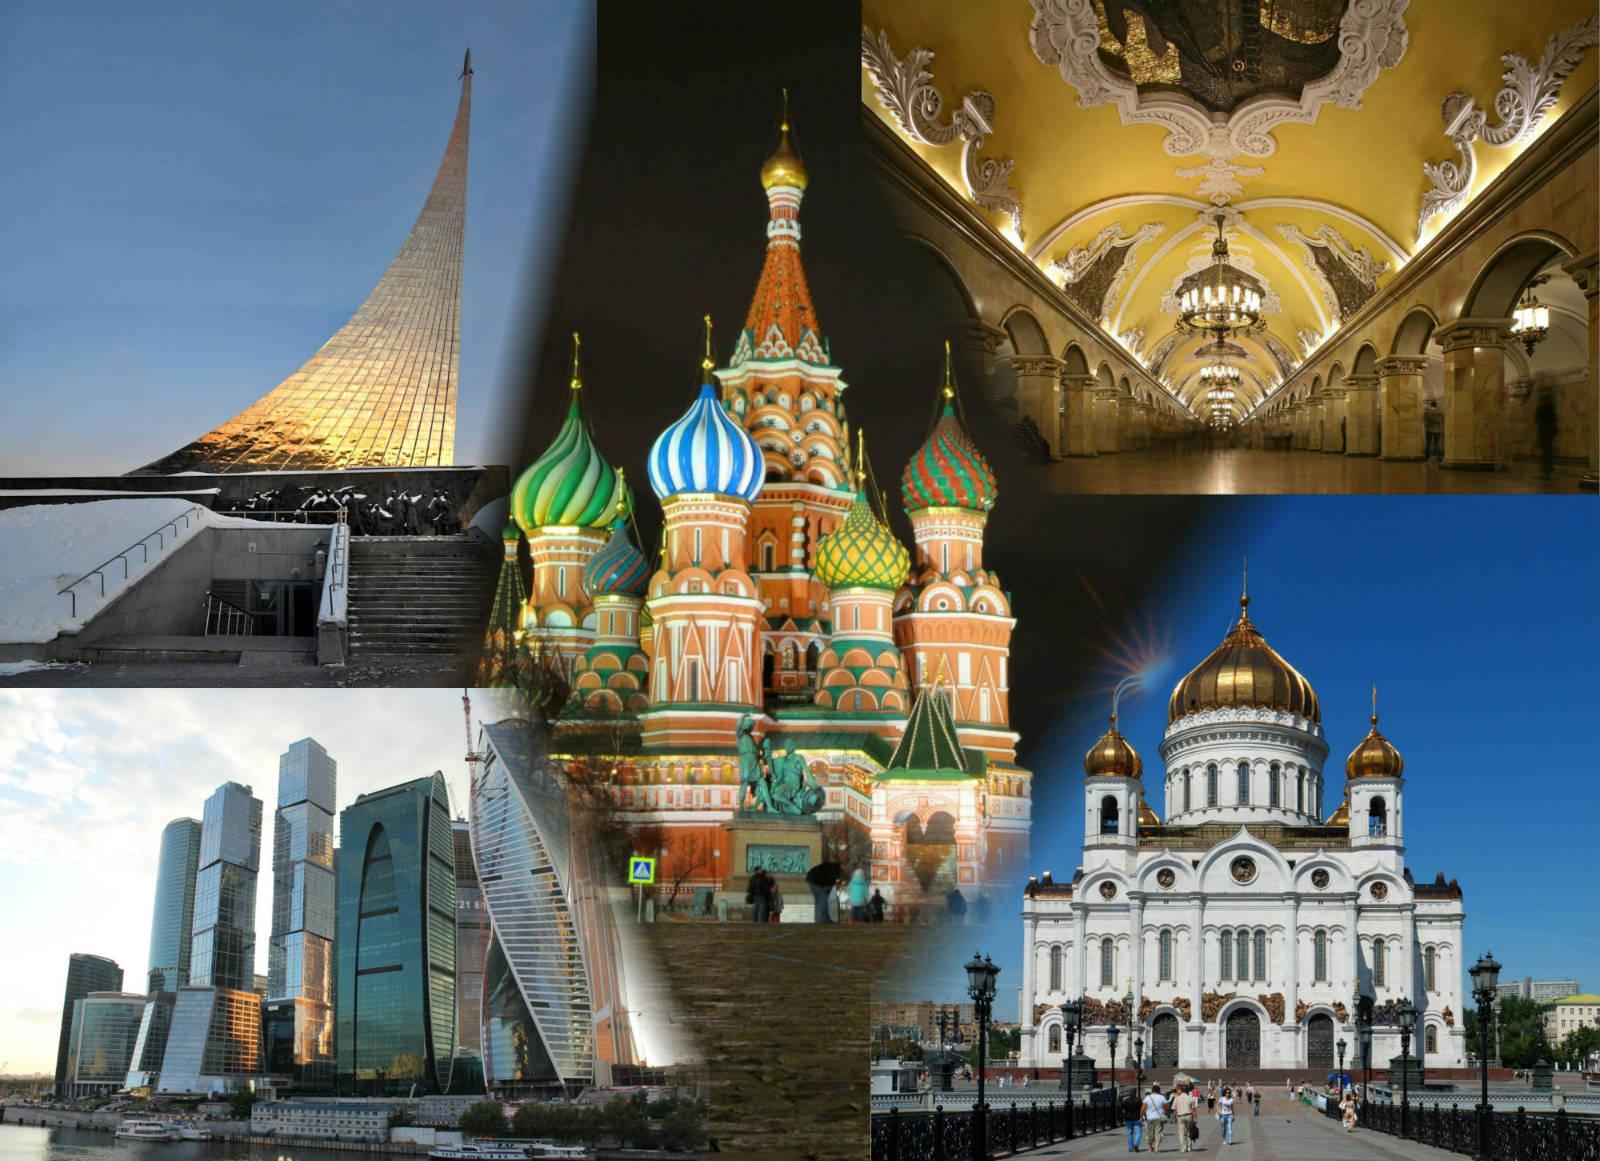 Cathedral Museum The Fairy-Tale Road, MOSCOW-MODERN HISTORICAL FAIRY TALE - Travel All Together